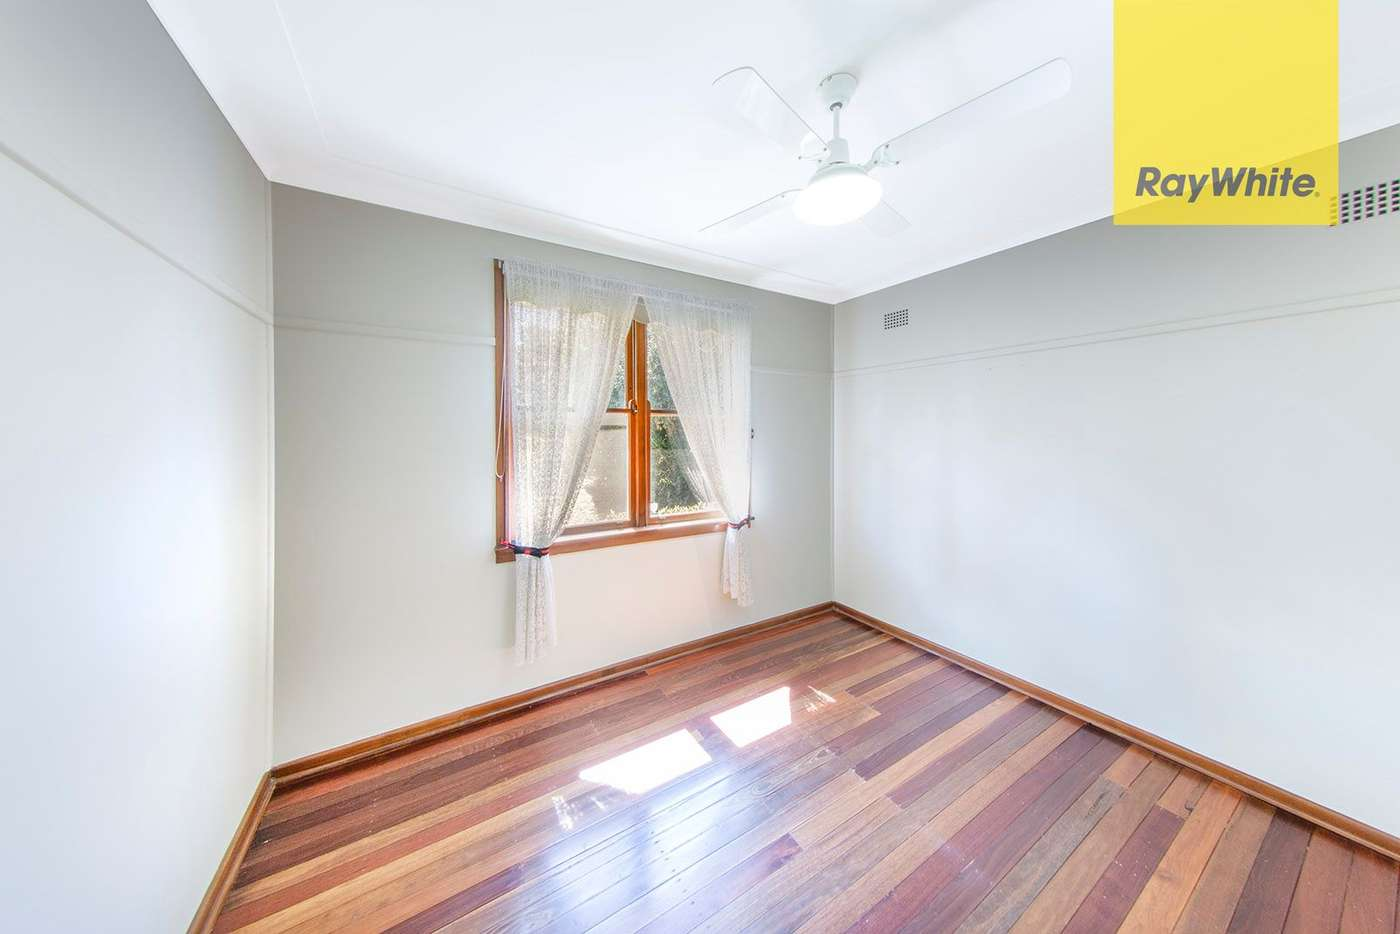 Sixth view of Homely house listing, 33 Kerrie Road, Oatlands NSW 2117